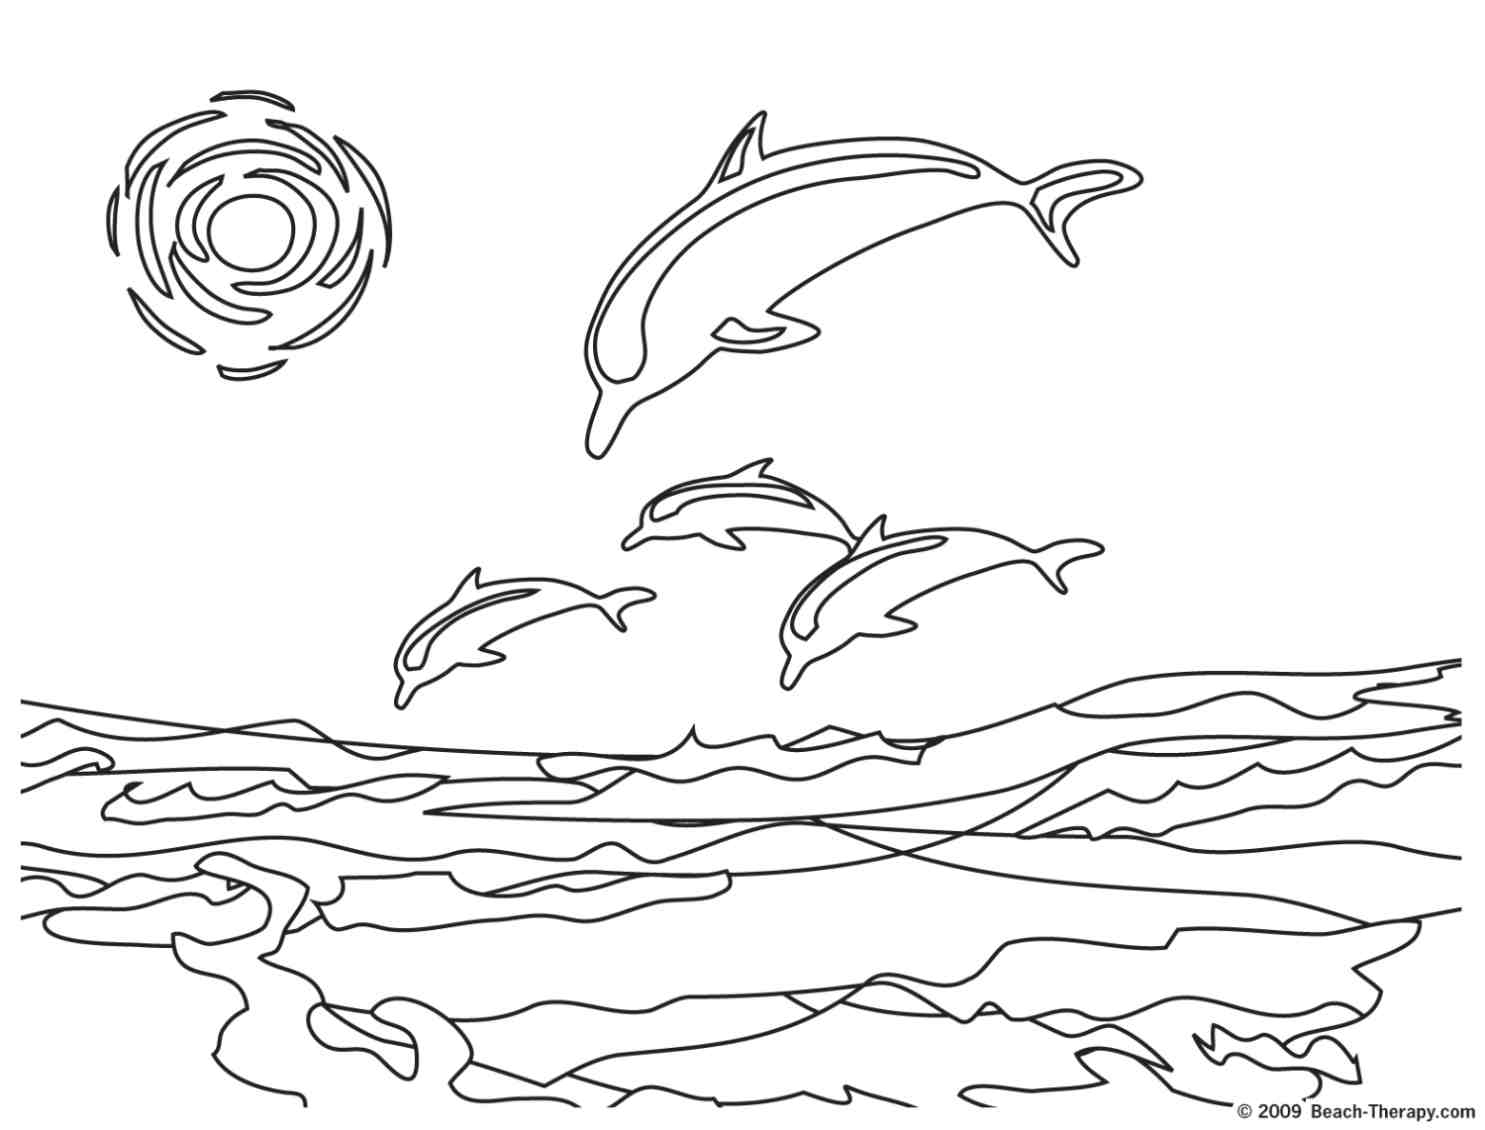 Dolphins For Children - Dolphins Kids Coloring Pages - Dolphin Coloring Sheets Free Printable